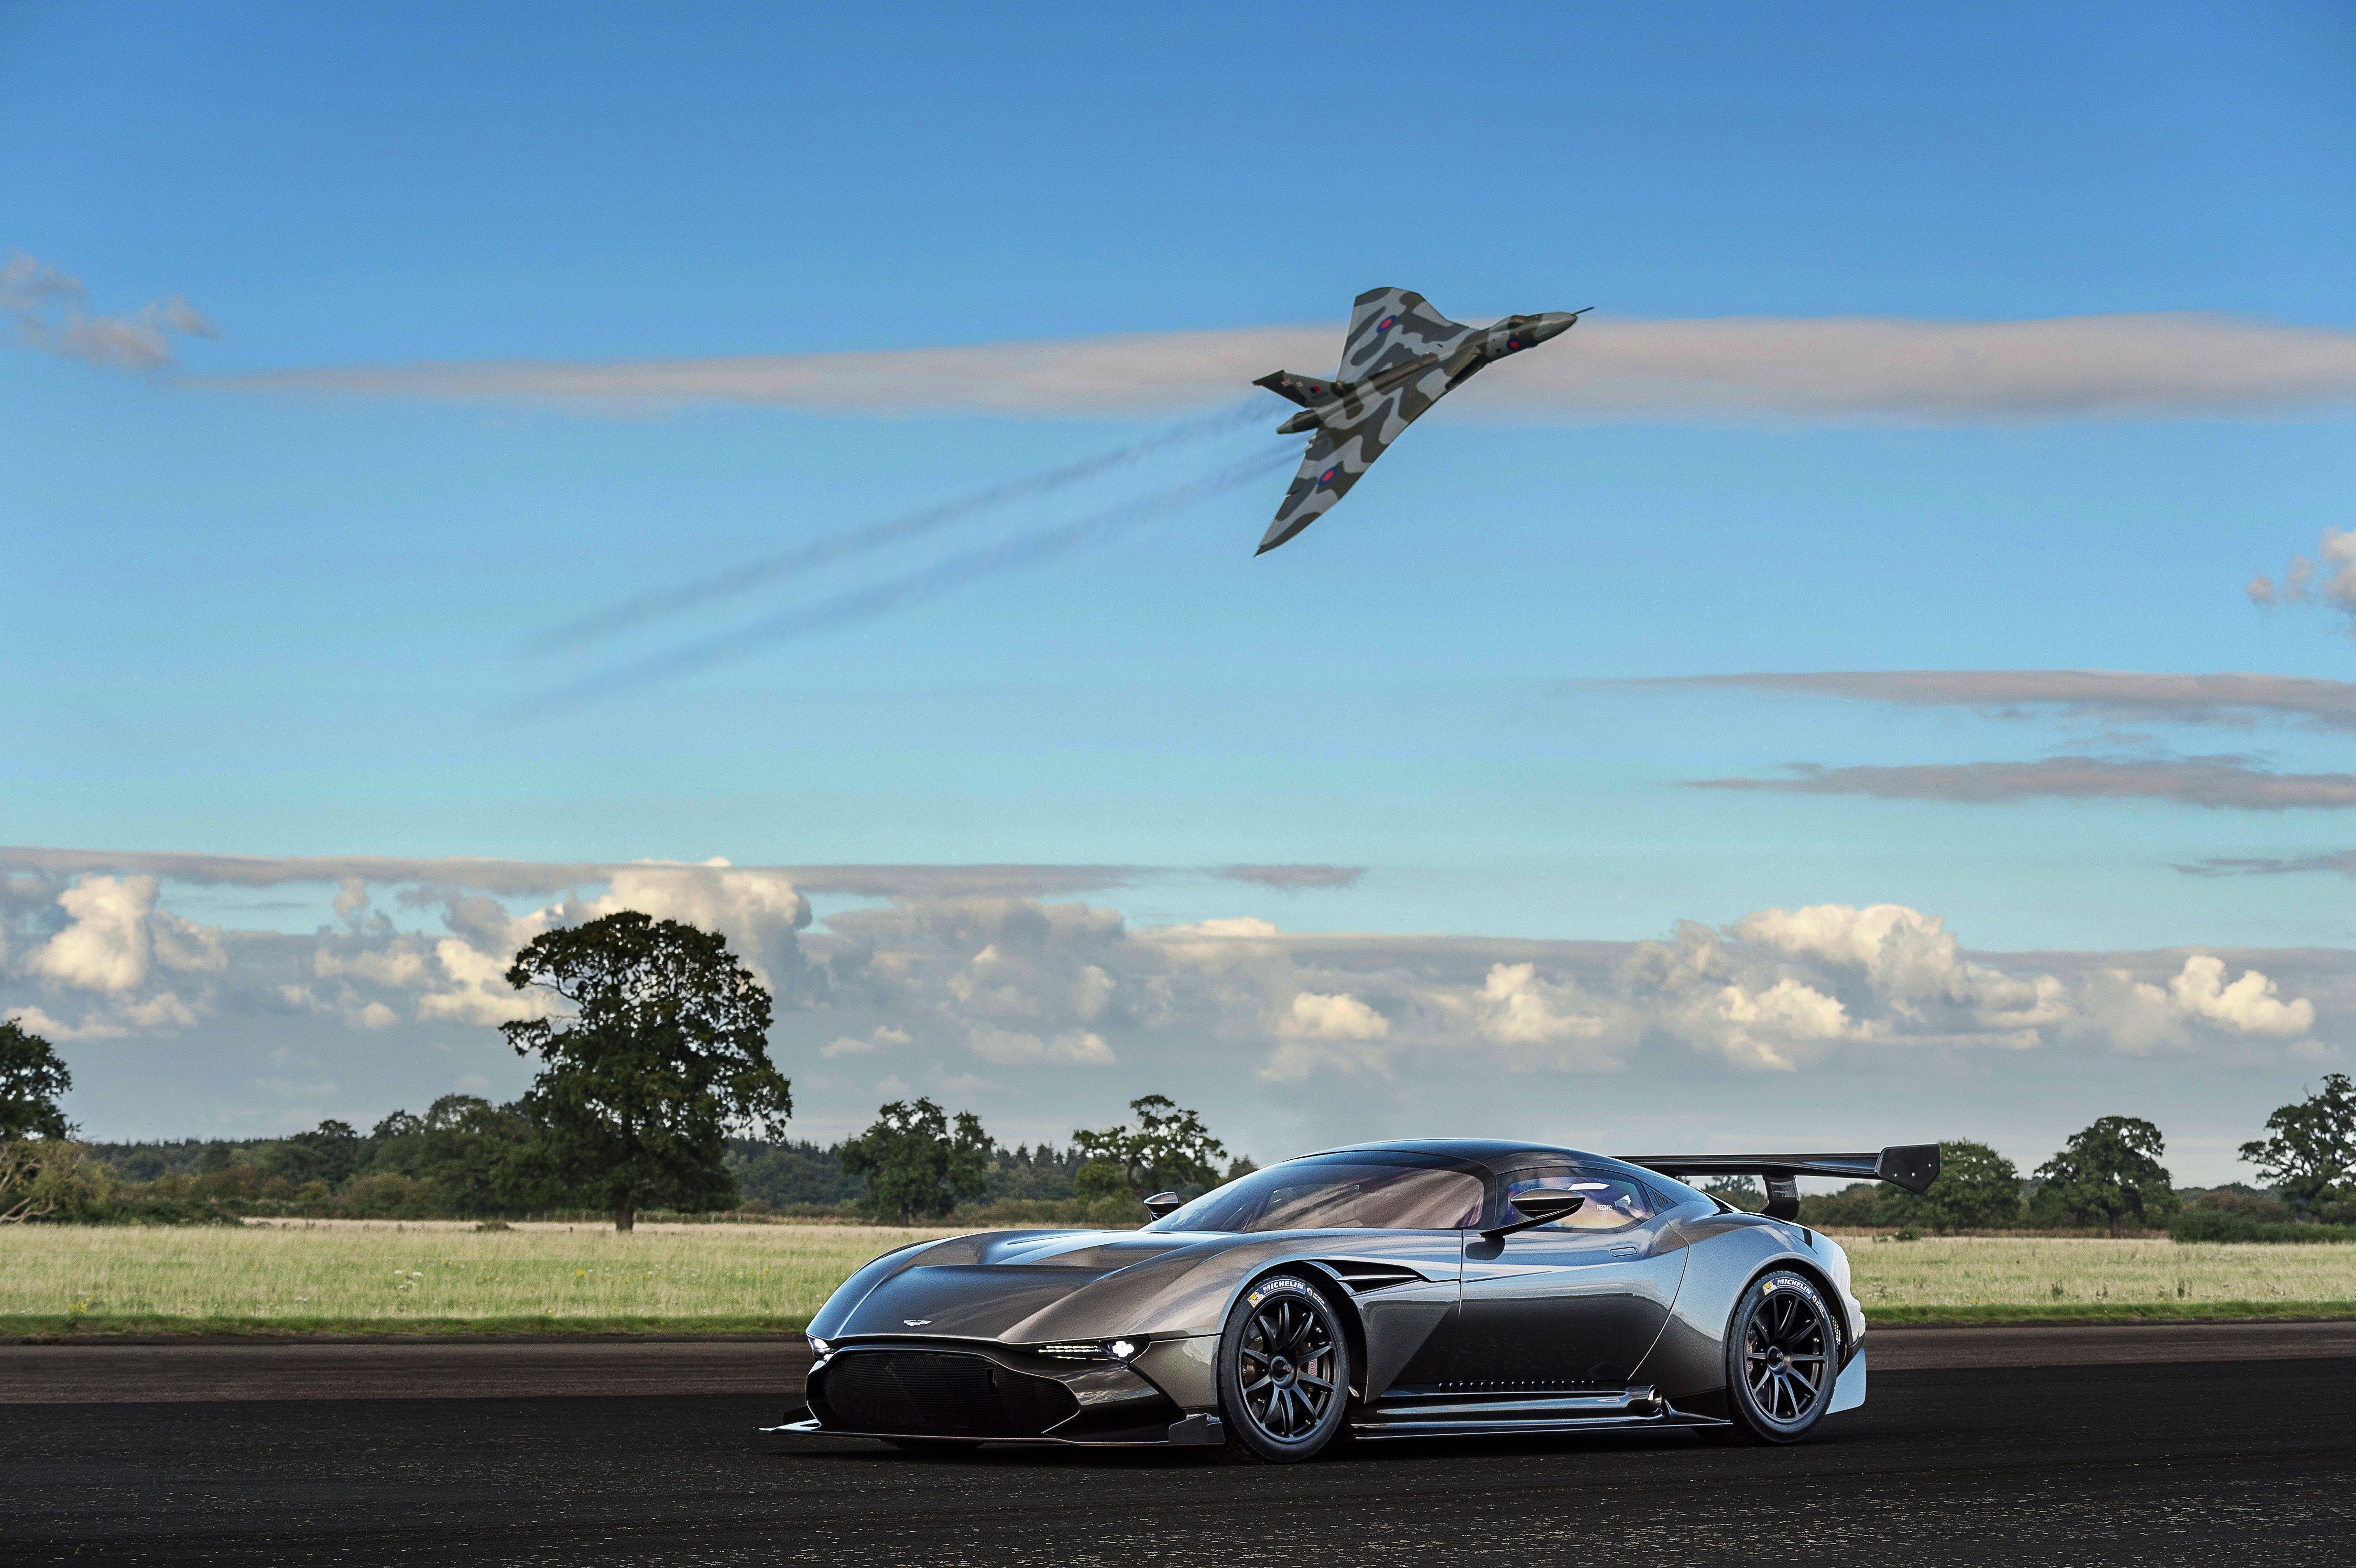 Your Ridiculously Awesome Aston Martin Vulcan Wallpapers Is Here